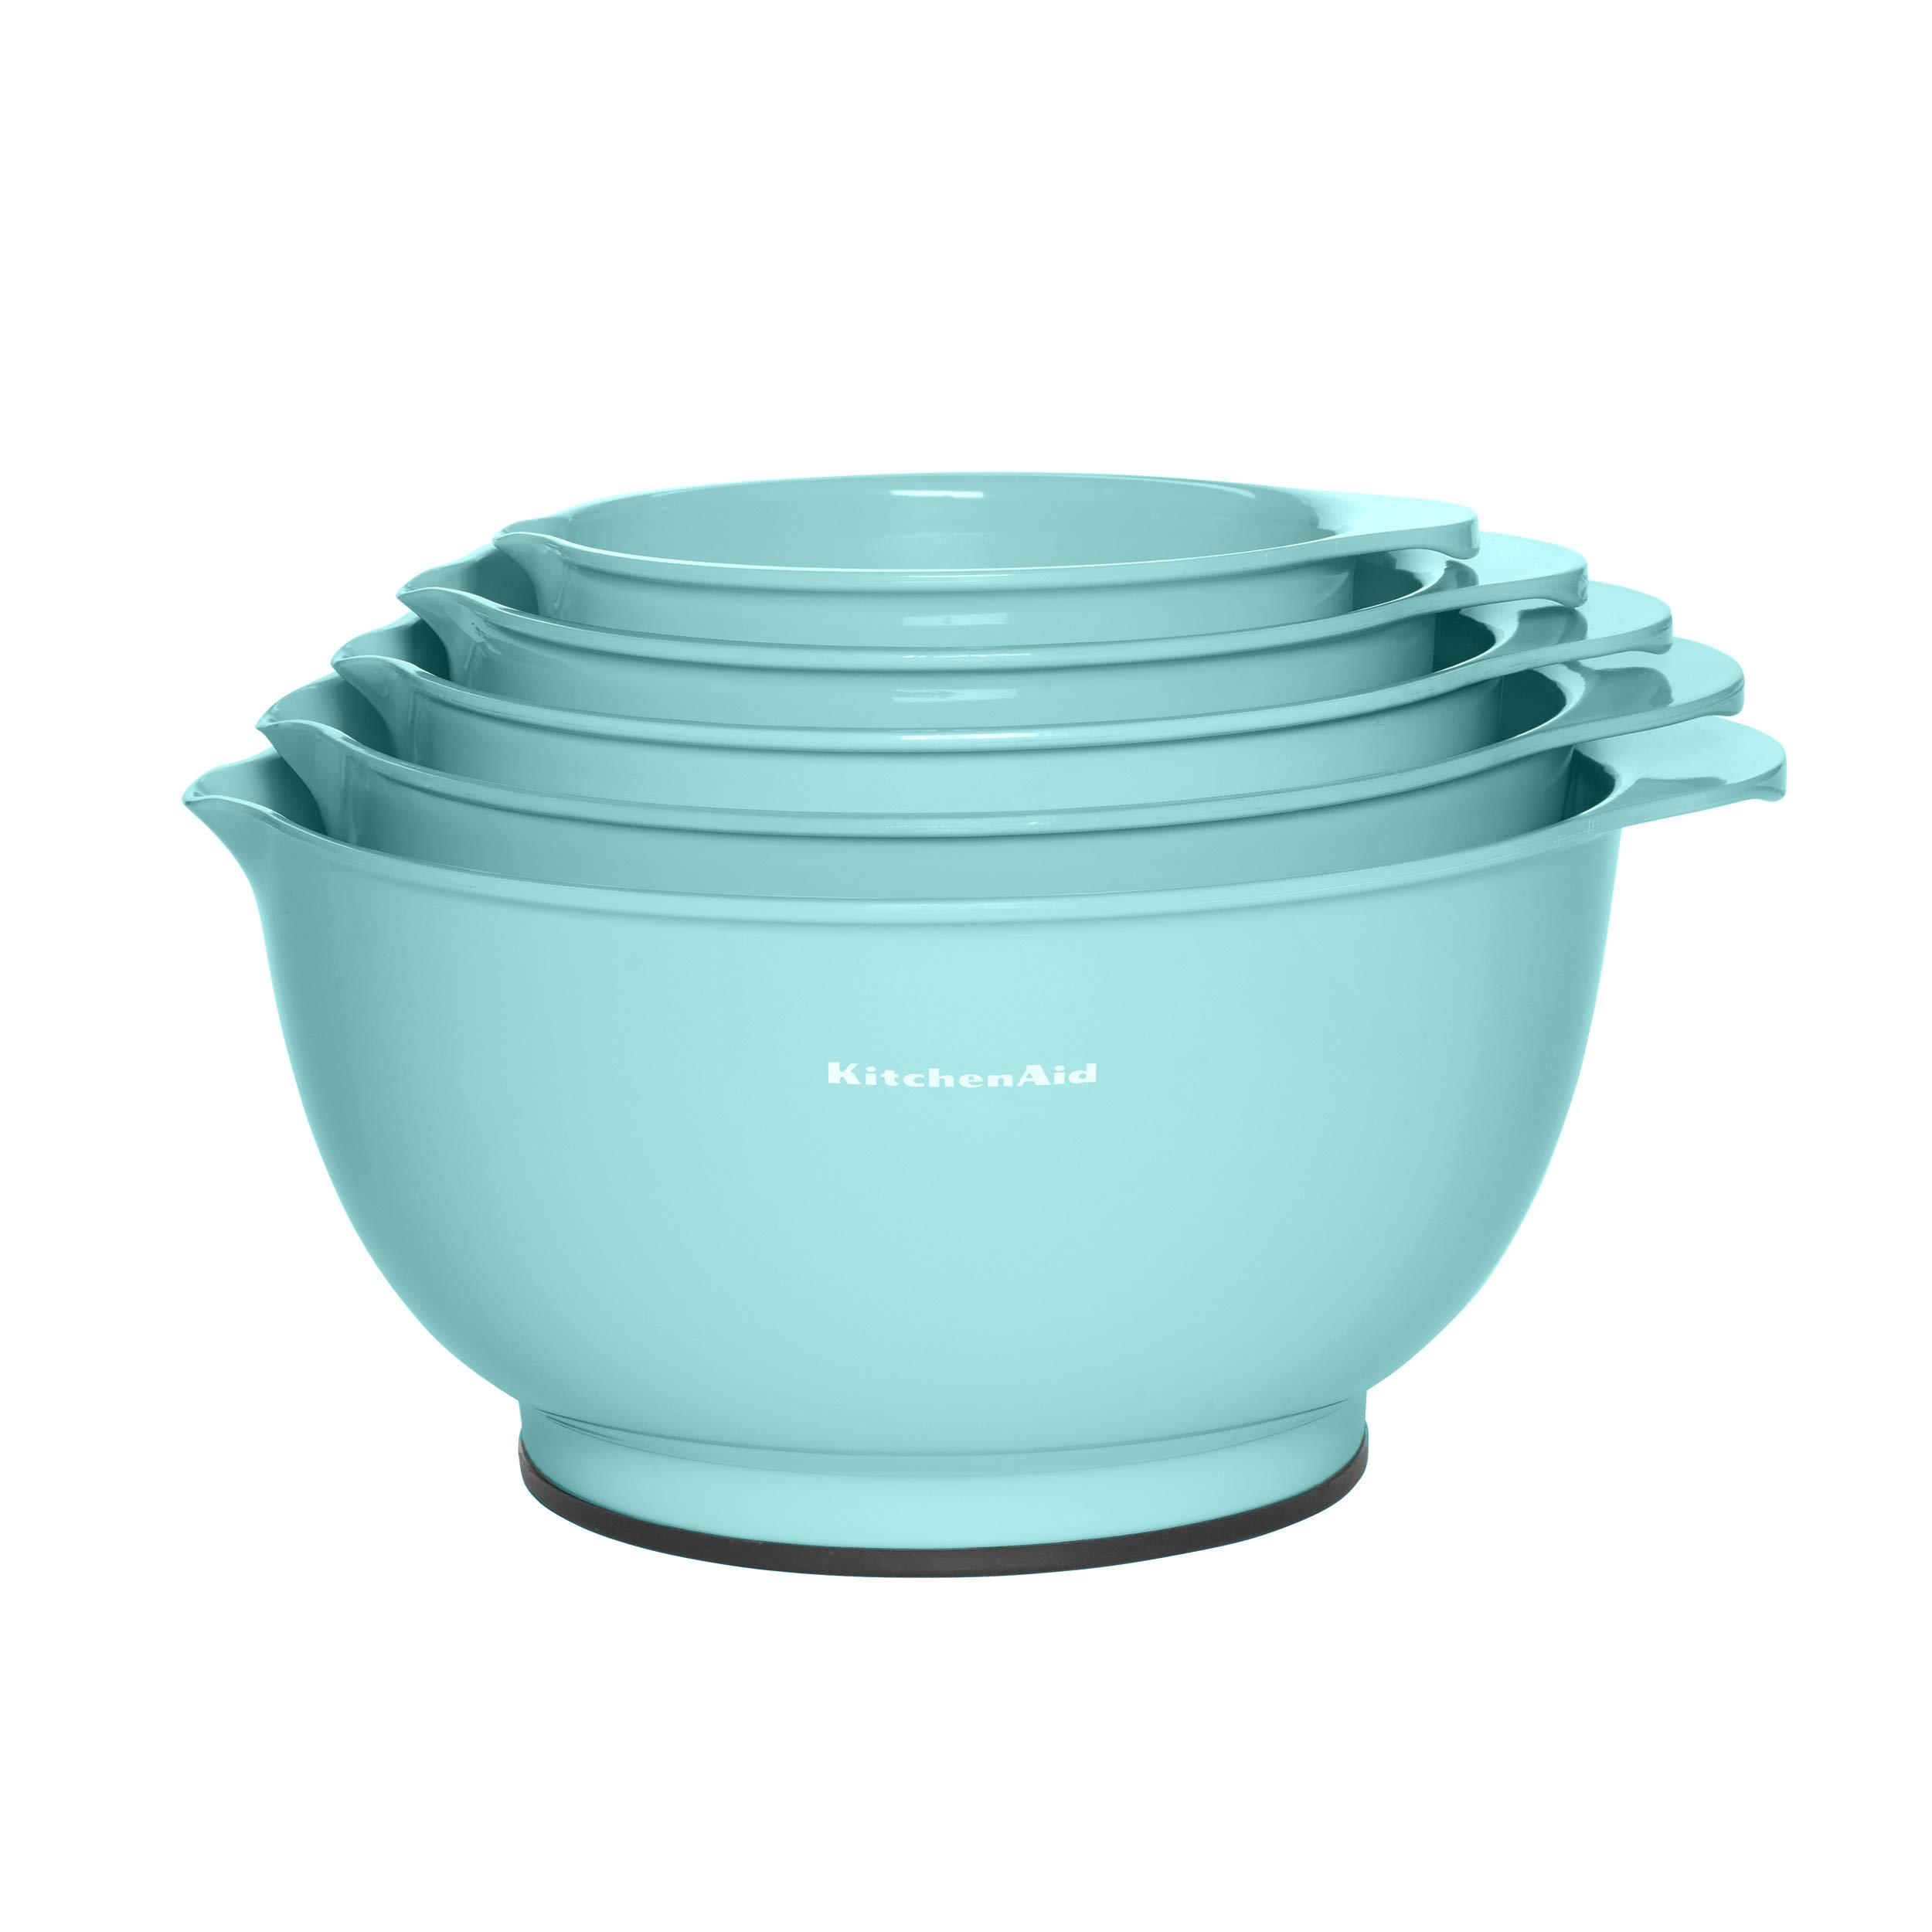 KitchenAid Mixing Bowls, Set of 5, Aqua Sky